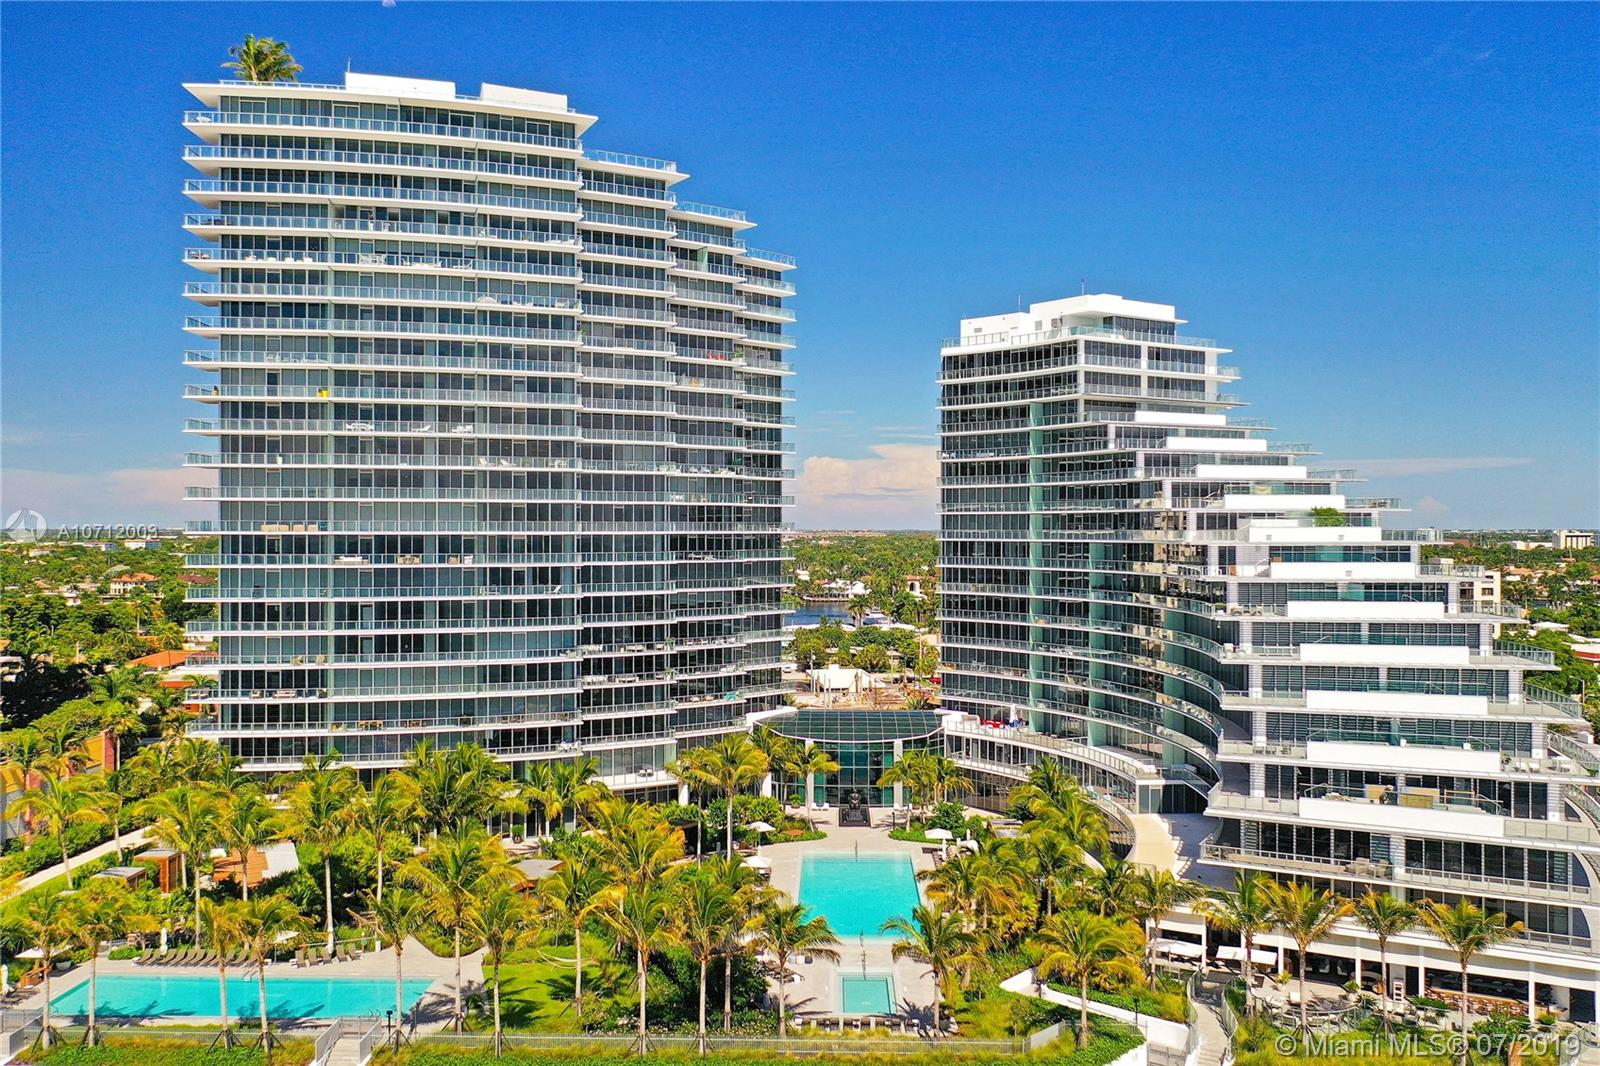 image #1 of property, Auberge Beach Residences, Unit S1203